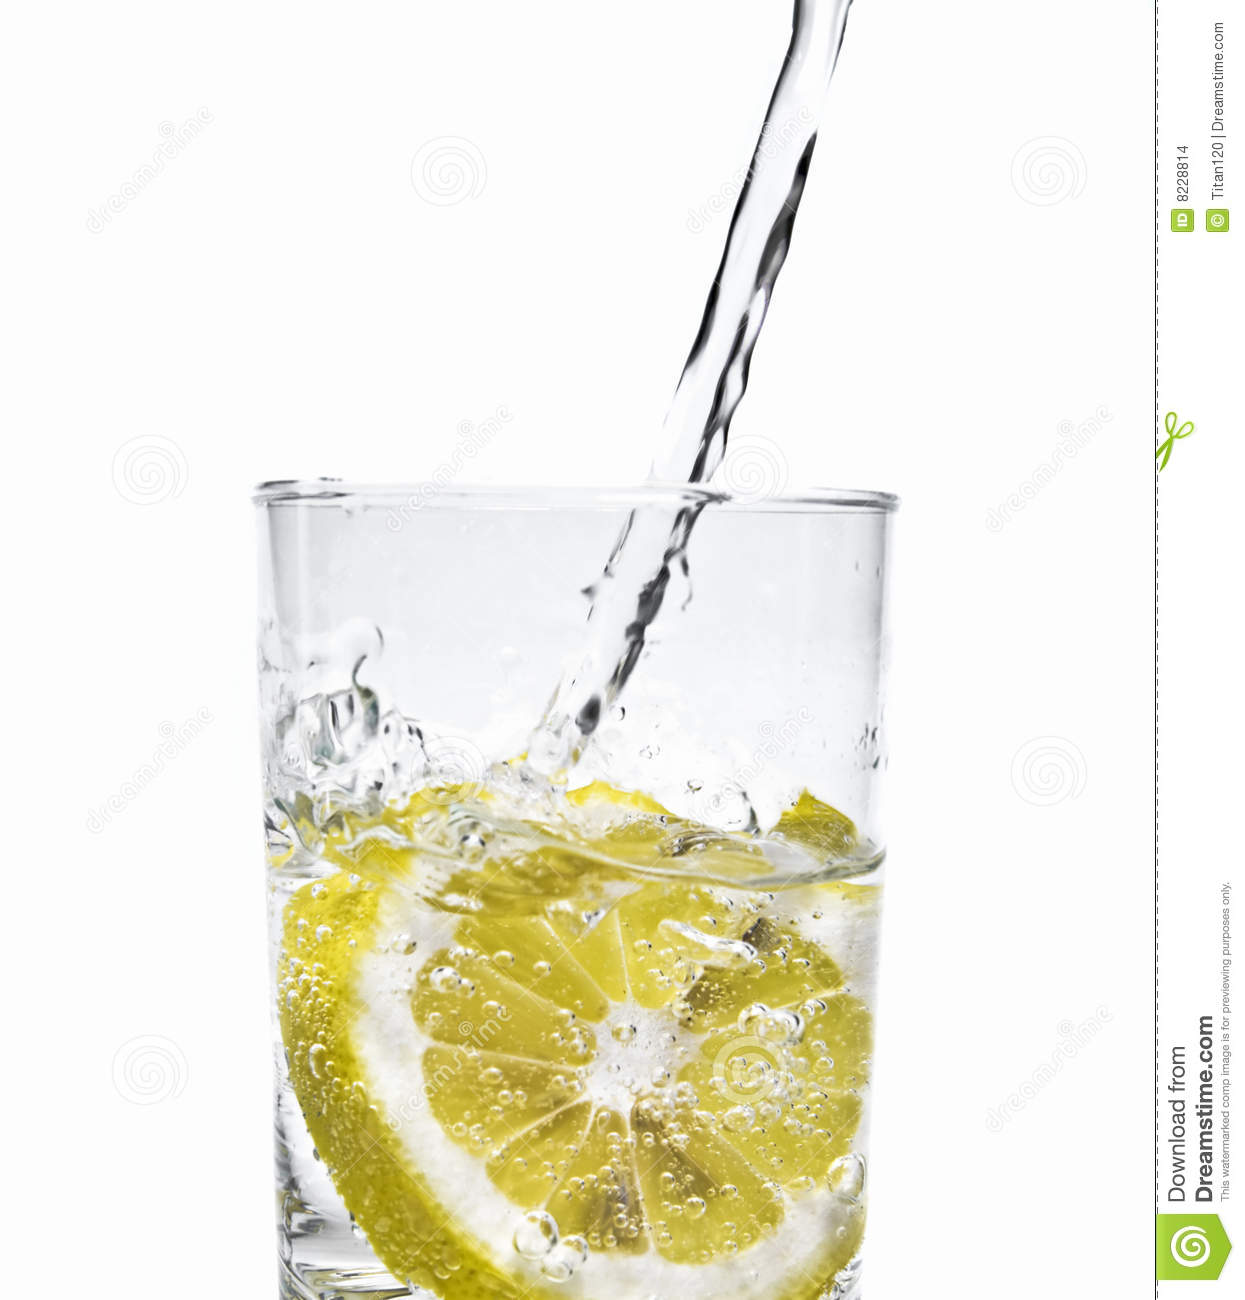 Stock images lemonade being poured into a glass